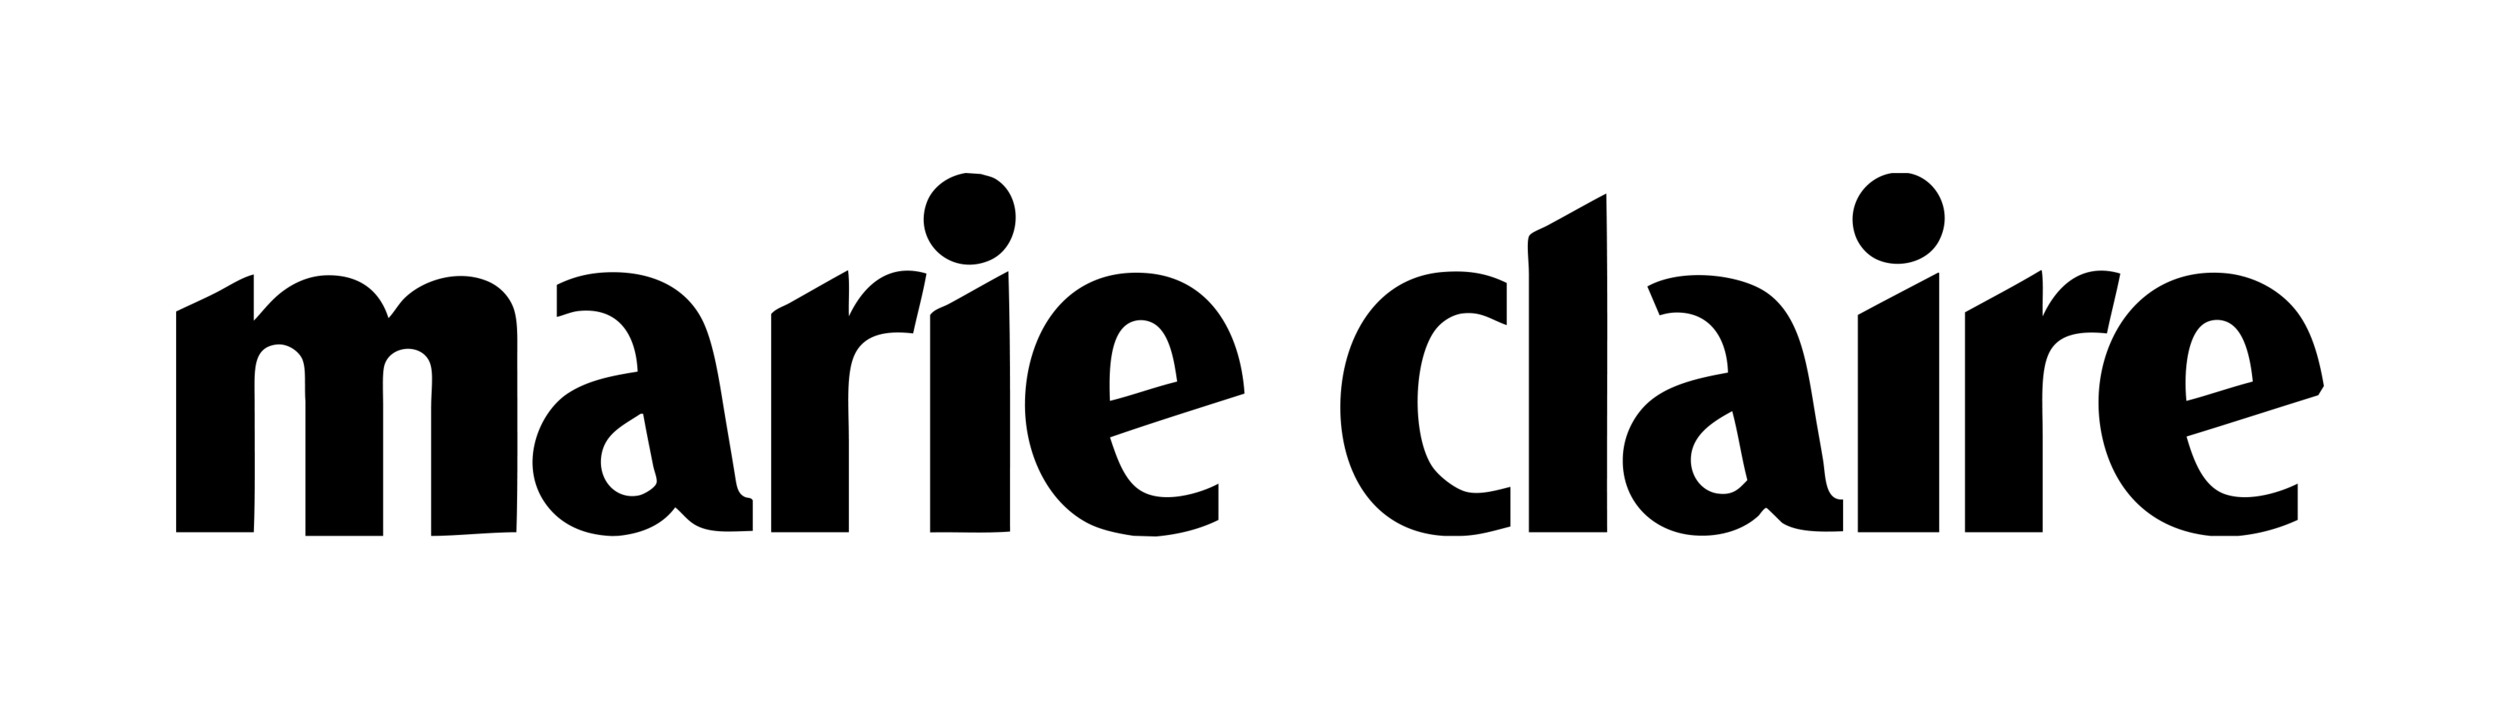 logo_marie-claire.png